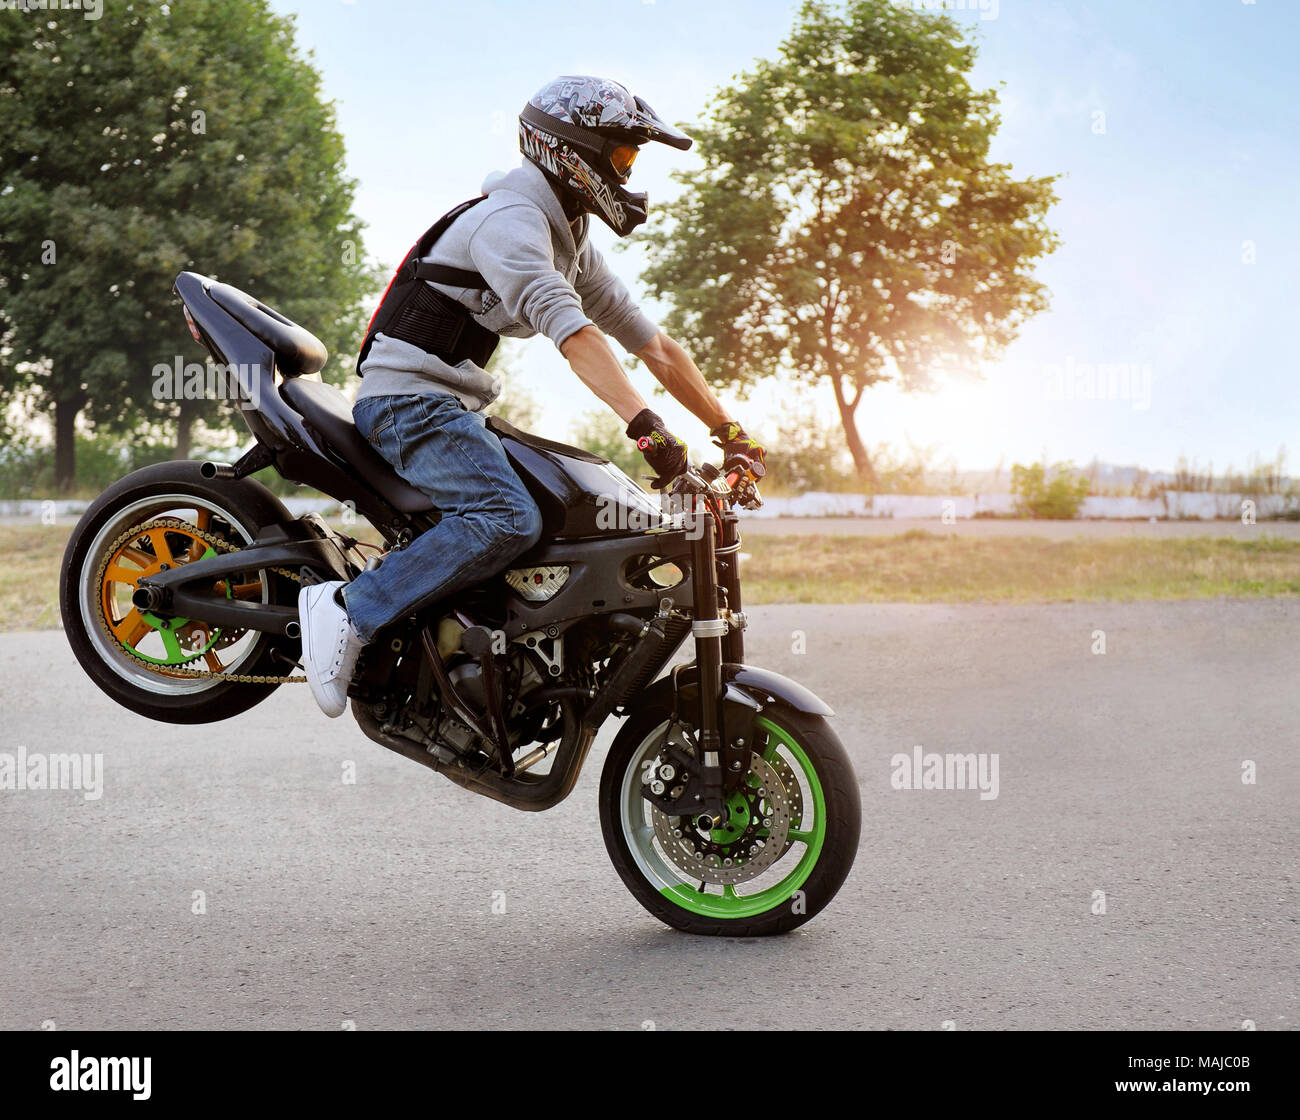 Ivano-Frankivsk, Ukraine - 28 August 2015 : Expressing himself. Talented stunt biker on a riding motorcycle on one wheel. Summer cite street filled with light of sunshine. - Stock Image